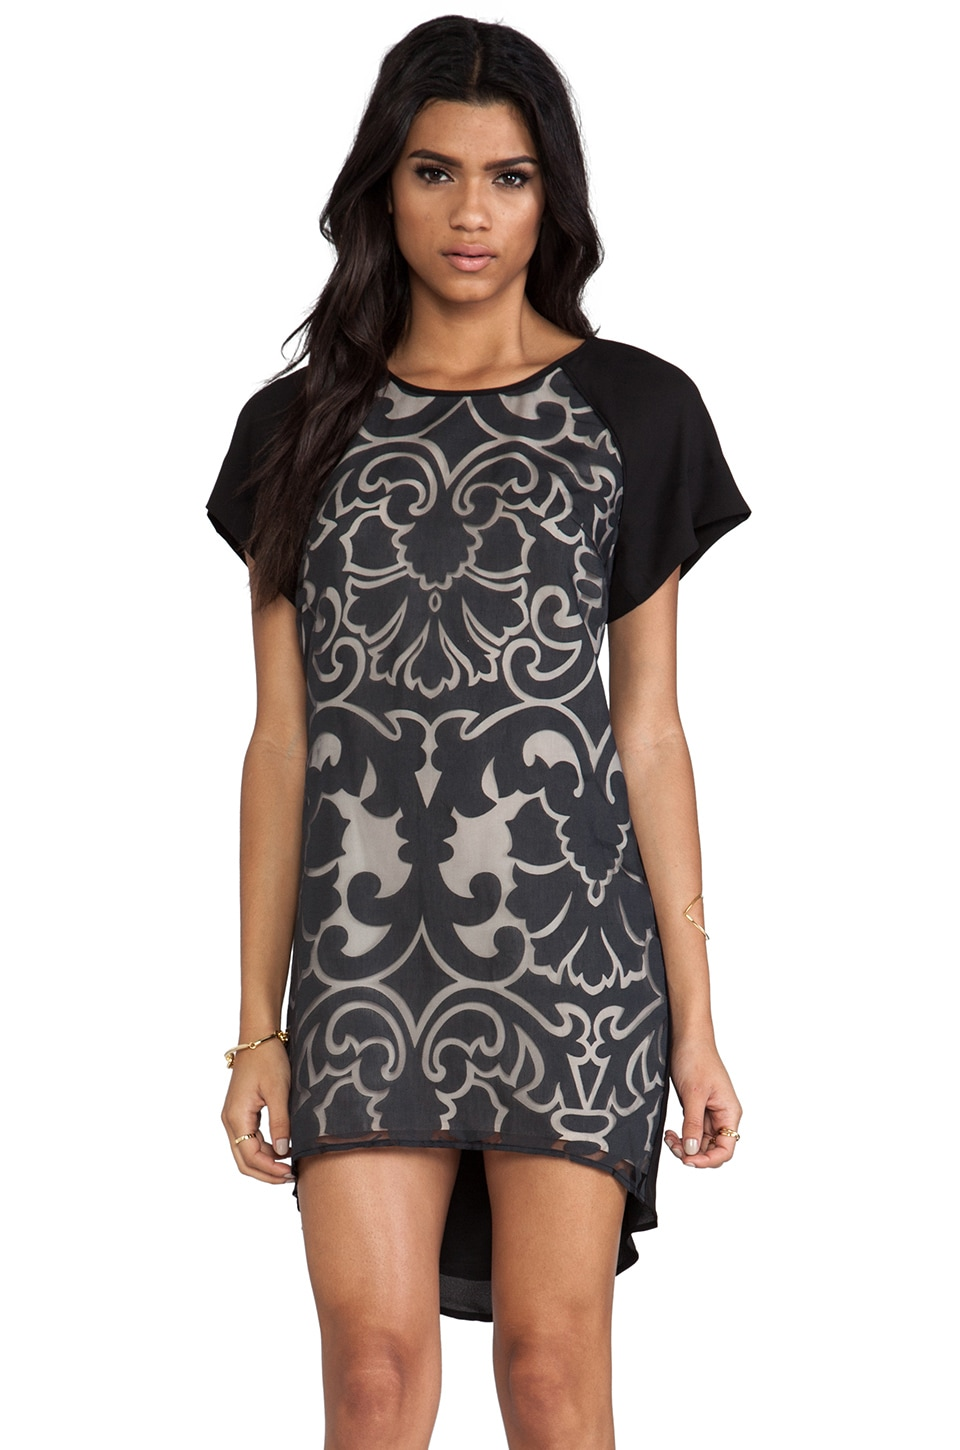 keepsake Little Talks Dress in Black Lace Burnout